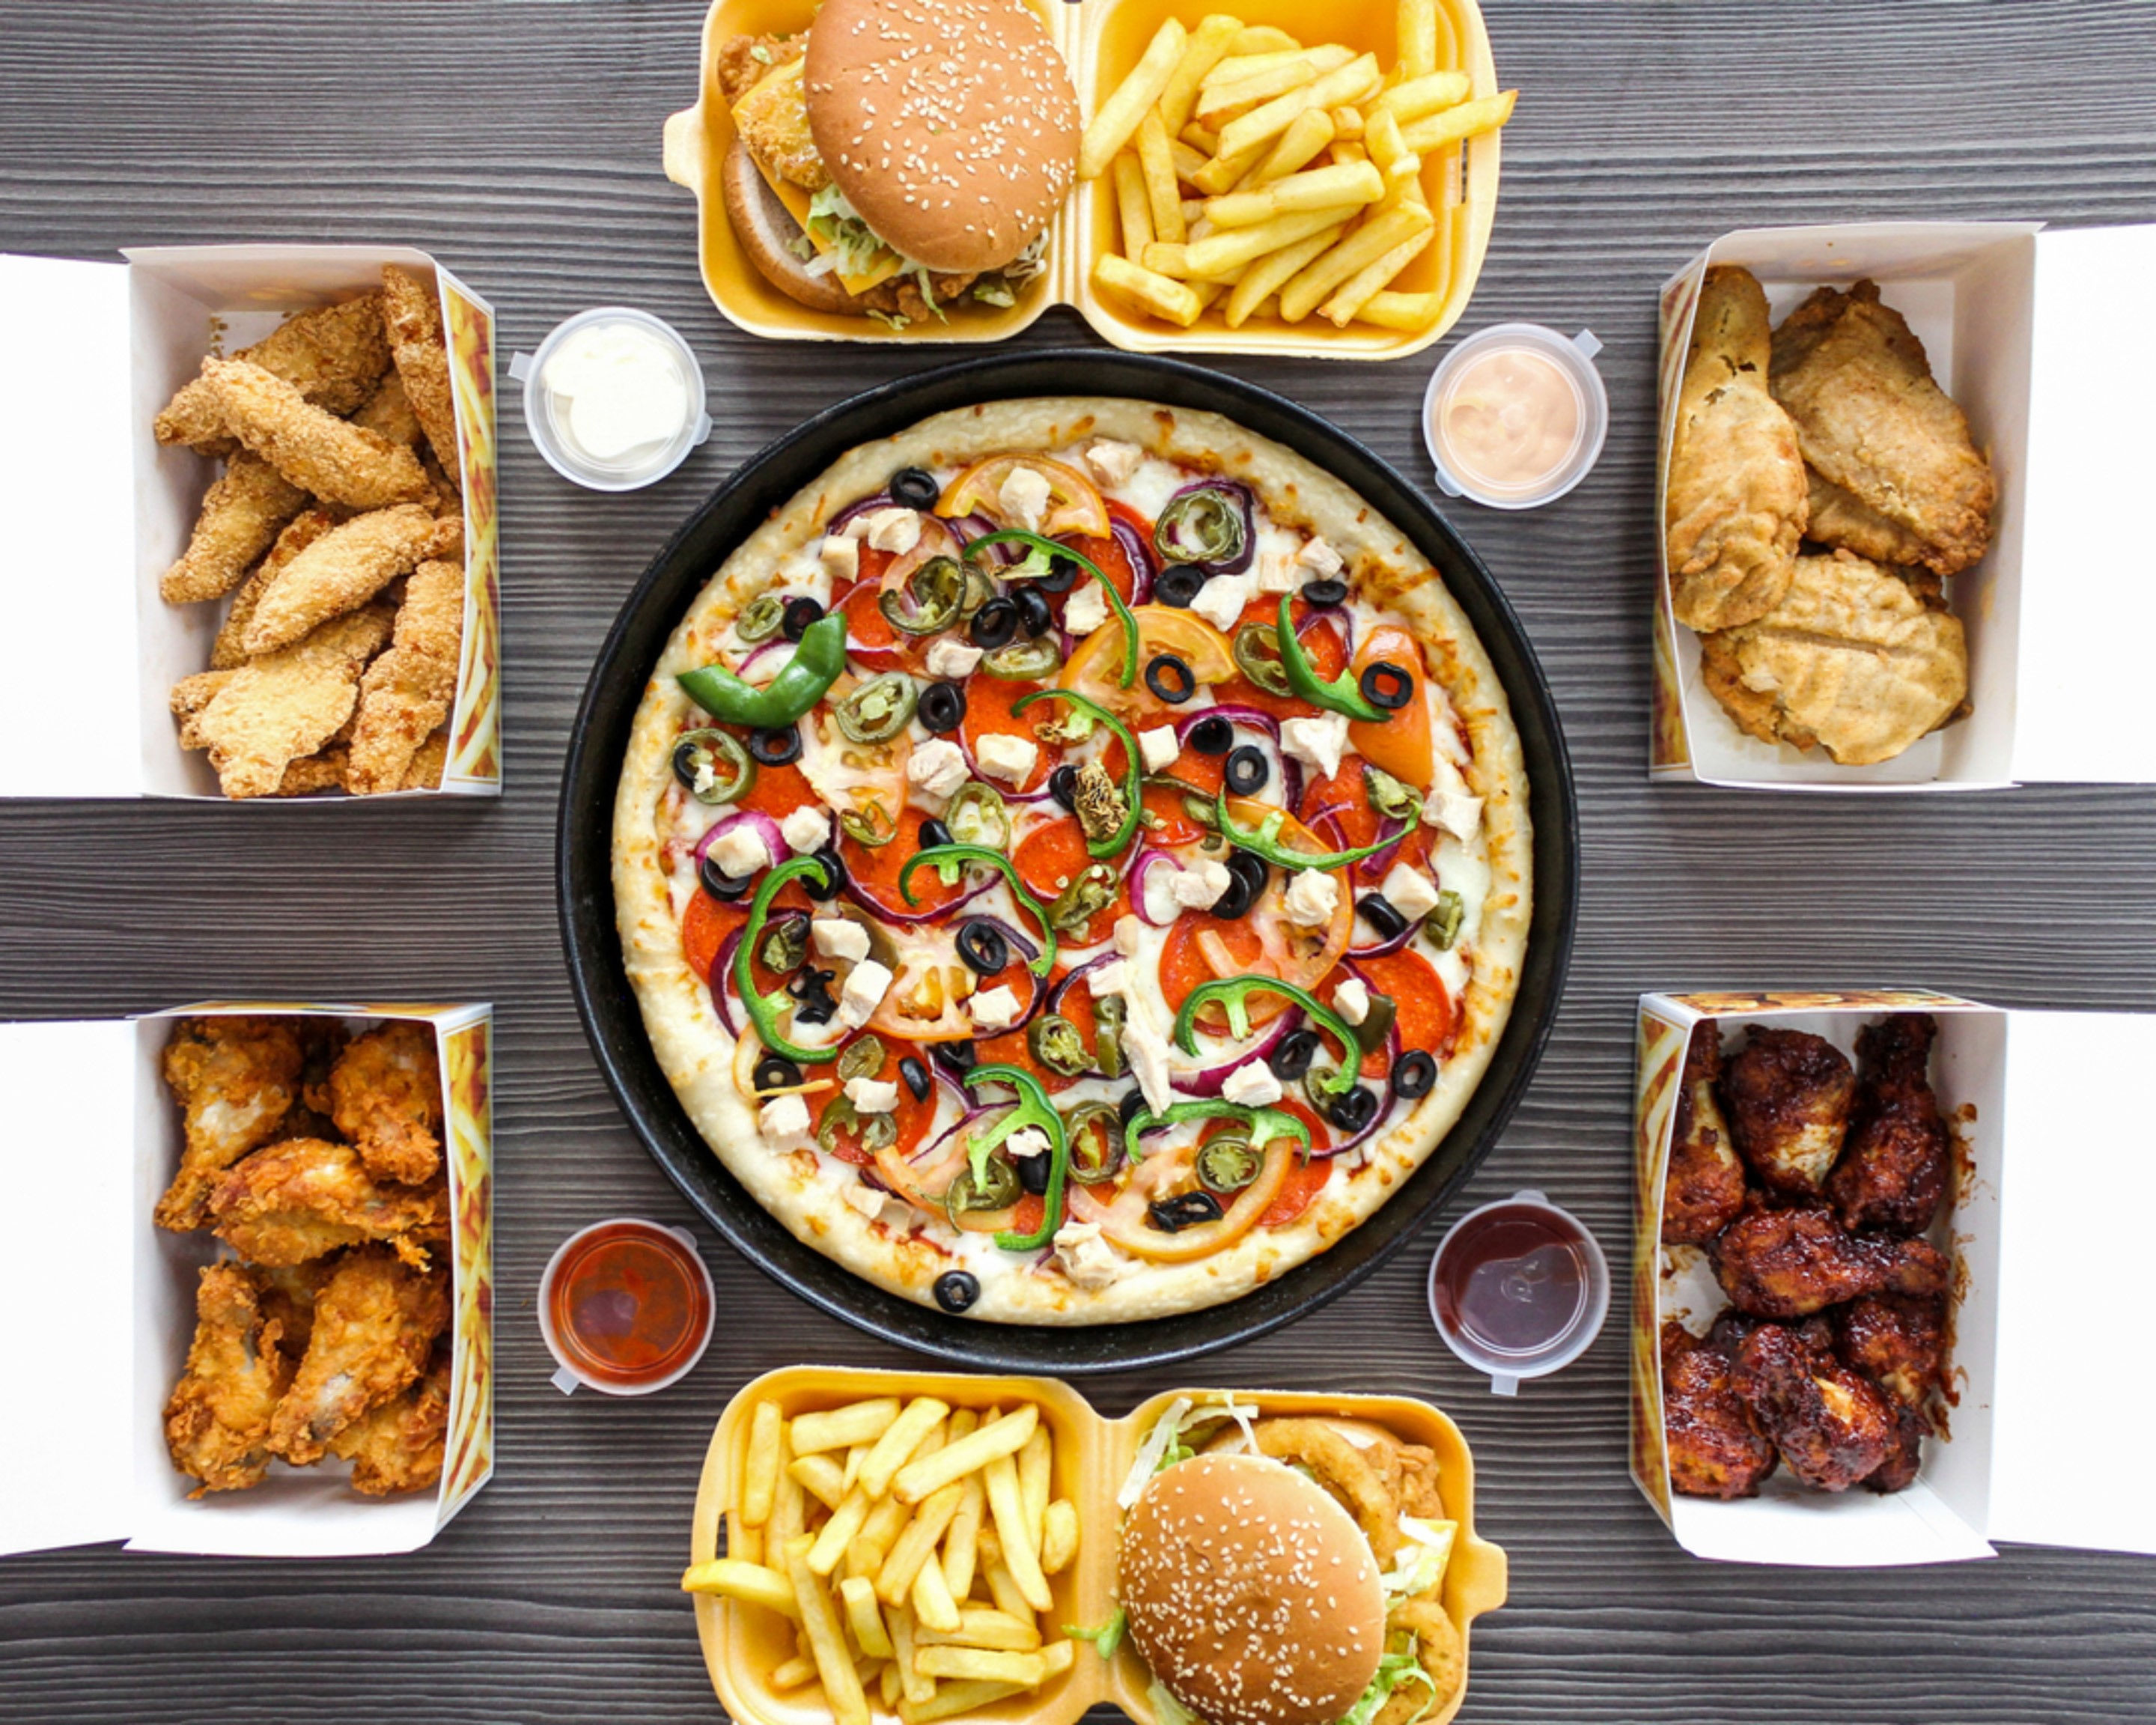 Royal Chicken And Pizza Whetstone High Road Delivery